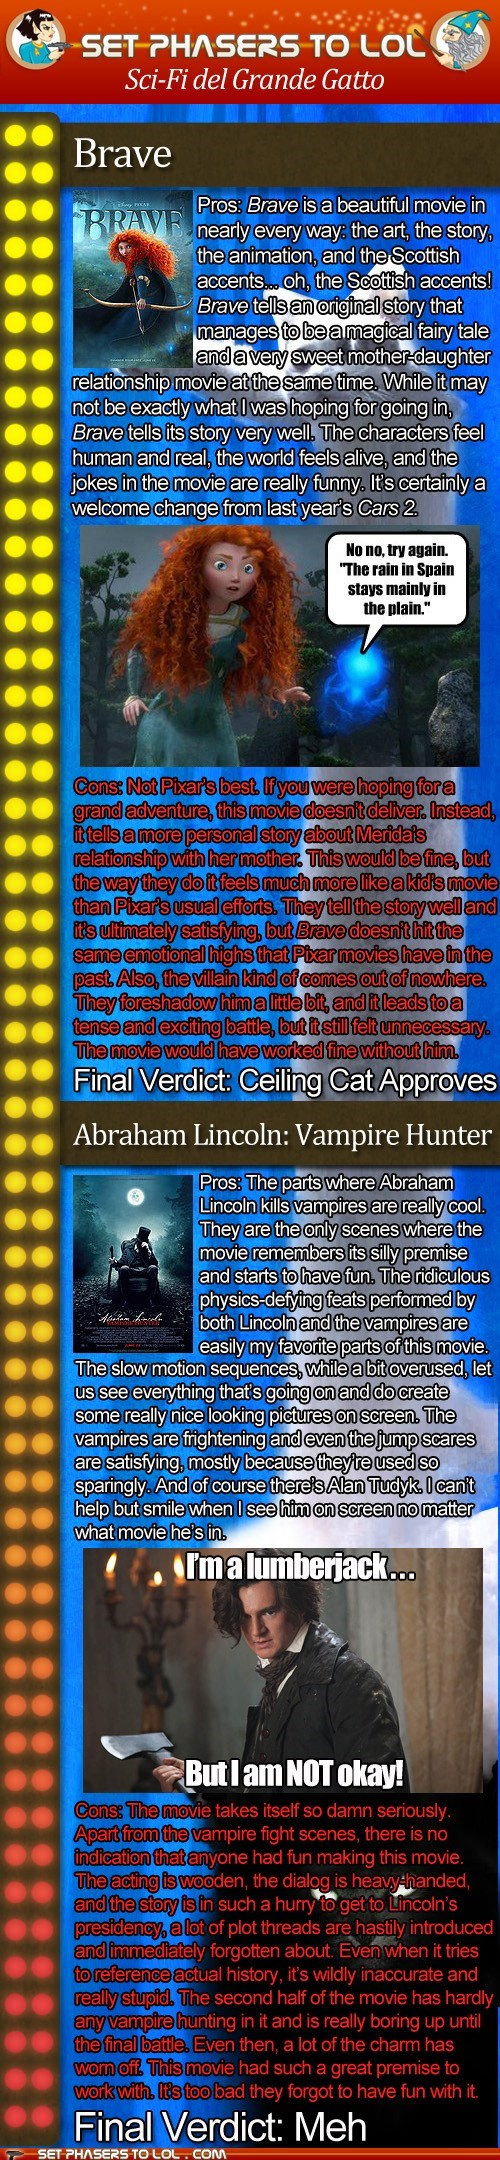 abraham lincoln vampire h,alan tudyk,benjamin walker,brave,grande gatto,merida,movies,reviews